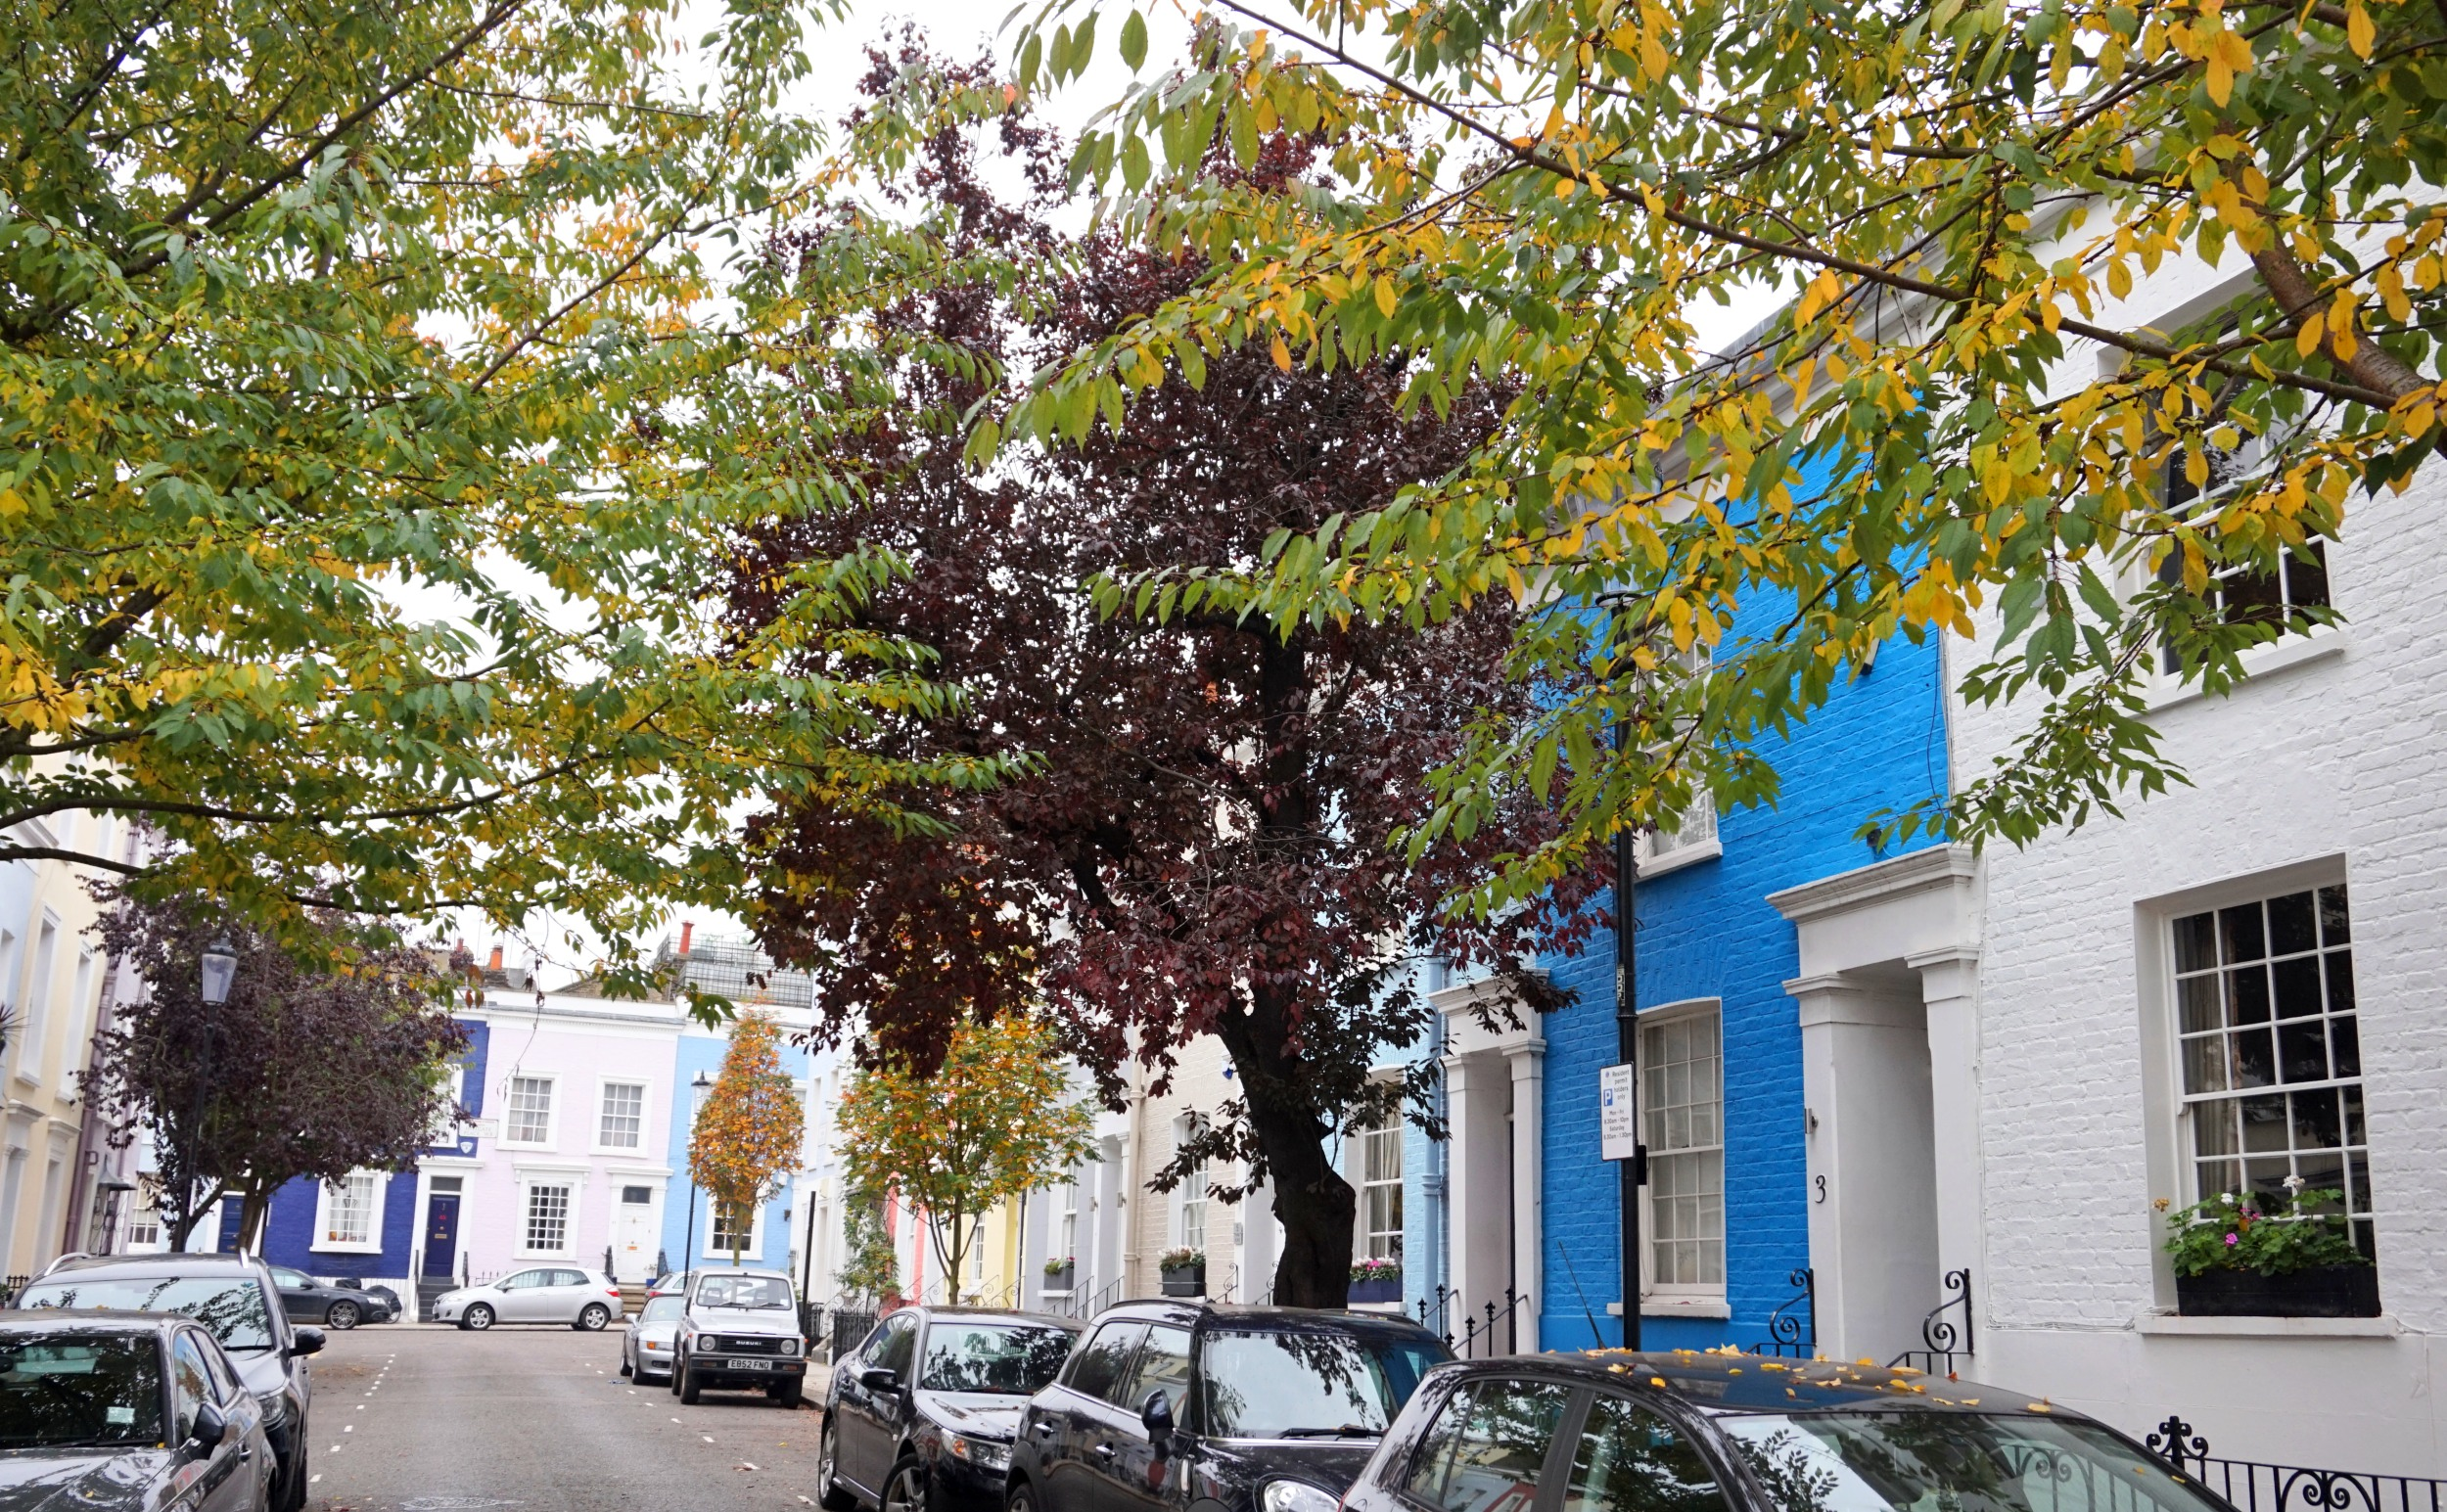 automne-notting-hill-2016-2